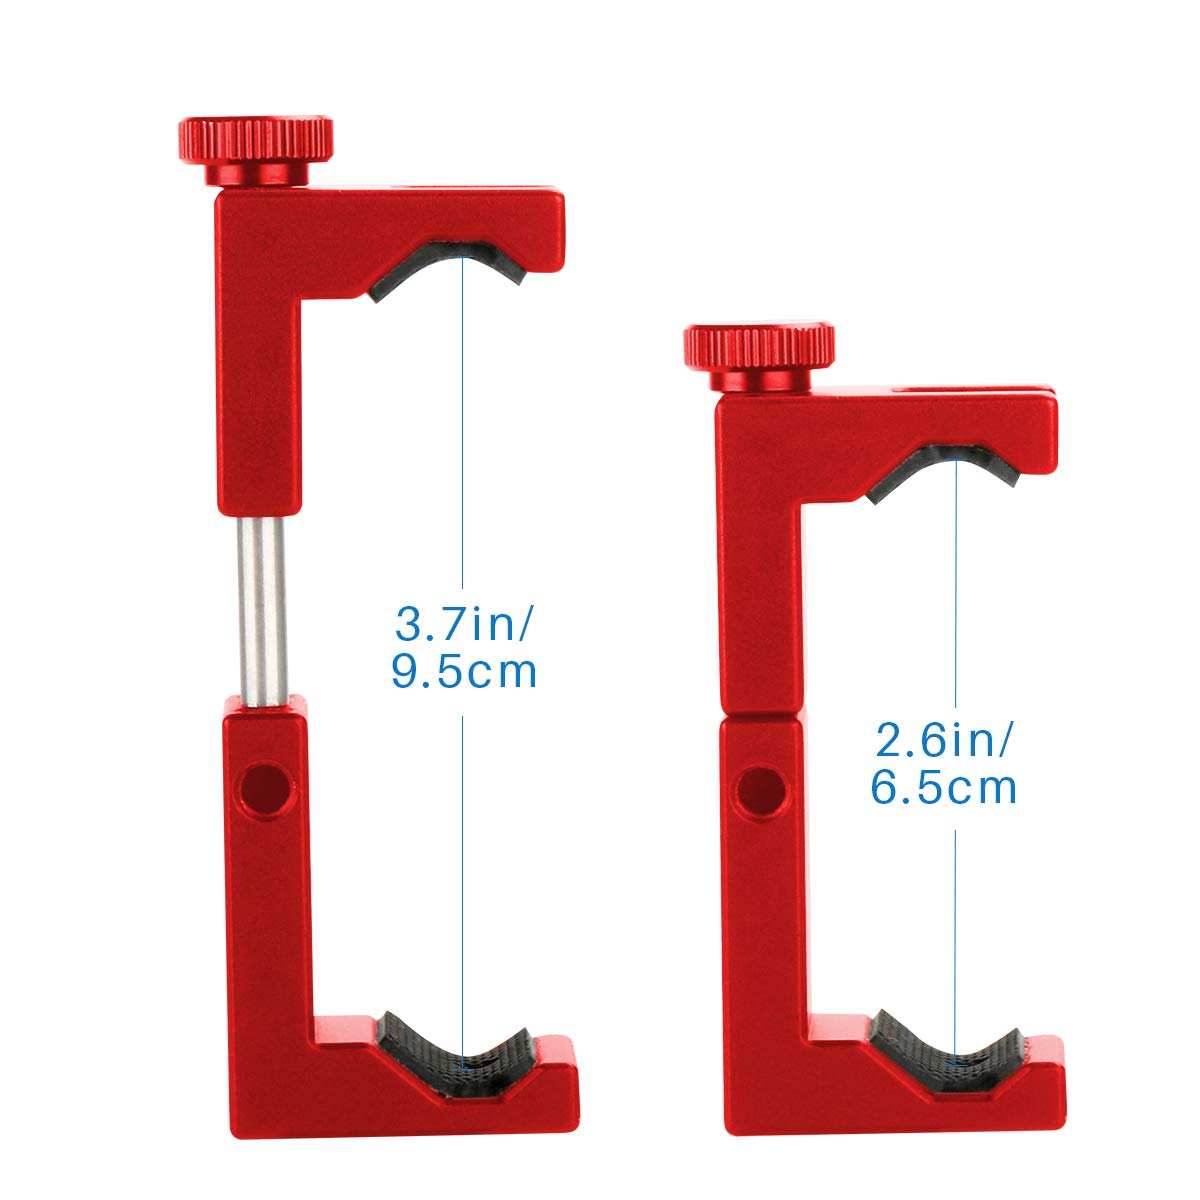 Universal Metal Adjustable Clamp for iPhone XS Xs Max X 8 7 Plus Samsung Huawei Android Smartphones Ulanzi ST-02S Newest Aluminum Phone Tripod Mount w Cold Shoe Mount Support Vertical and Horizontal